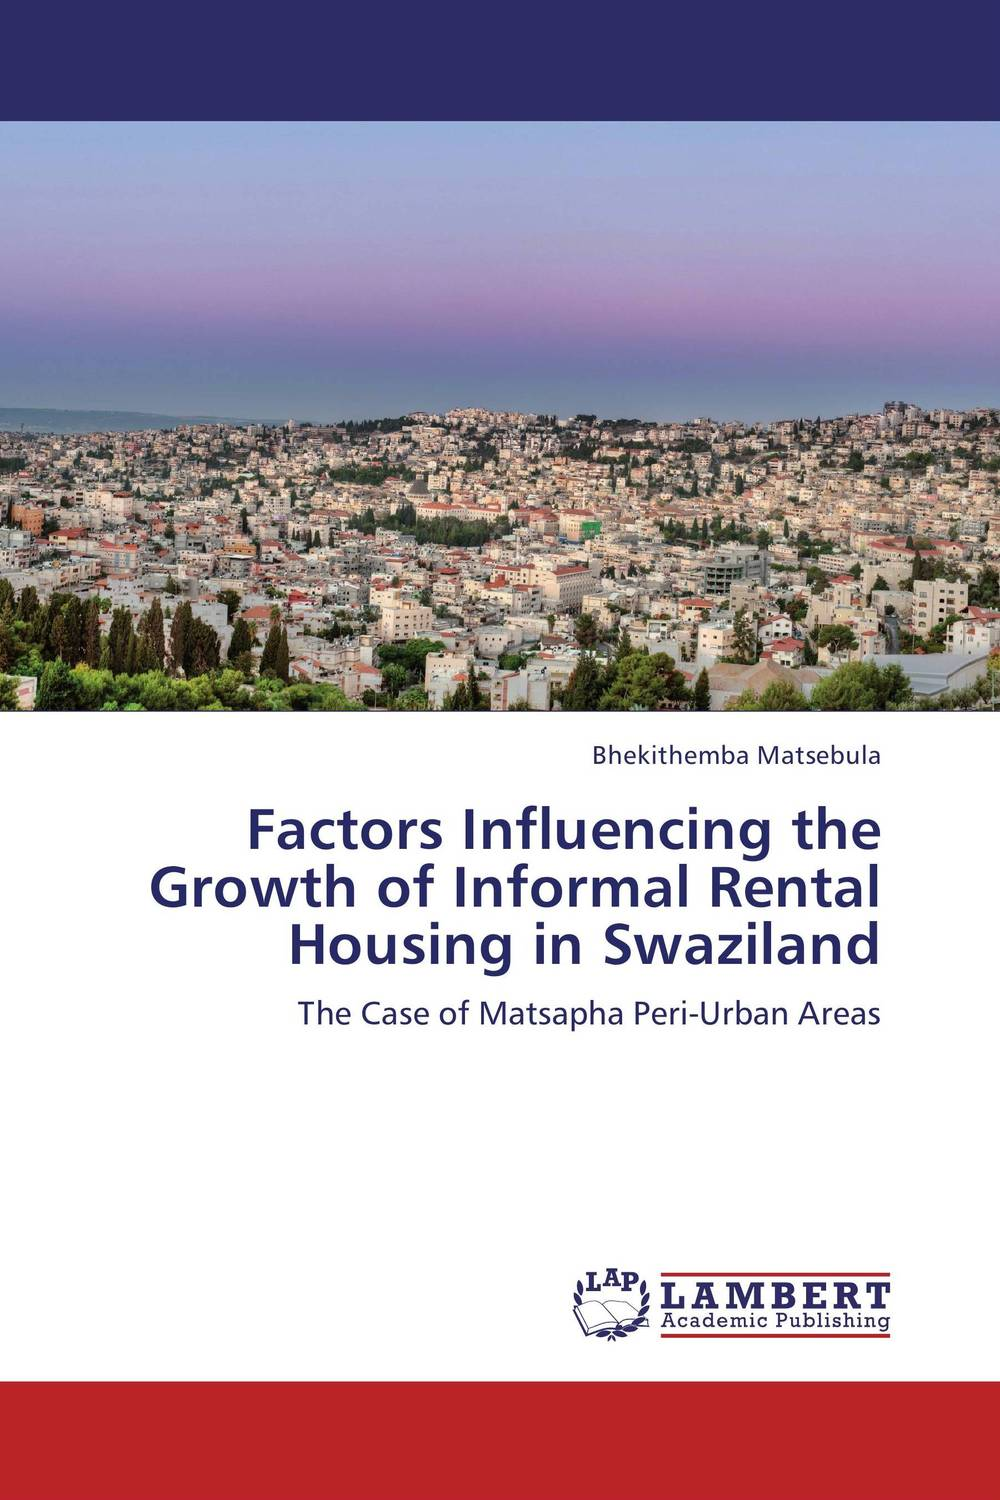 Factors Influencing the Growth of Informal Rental Housing in Swaziland driven to distraction